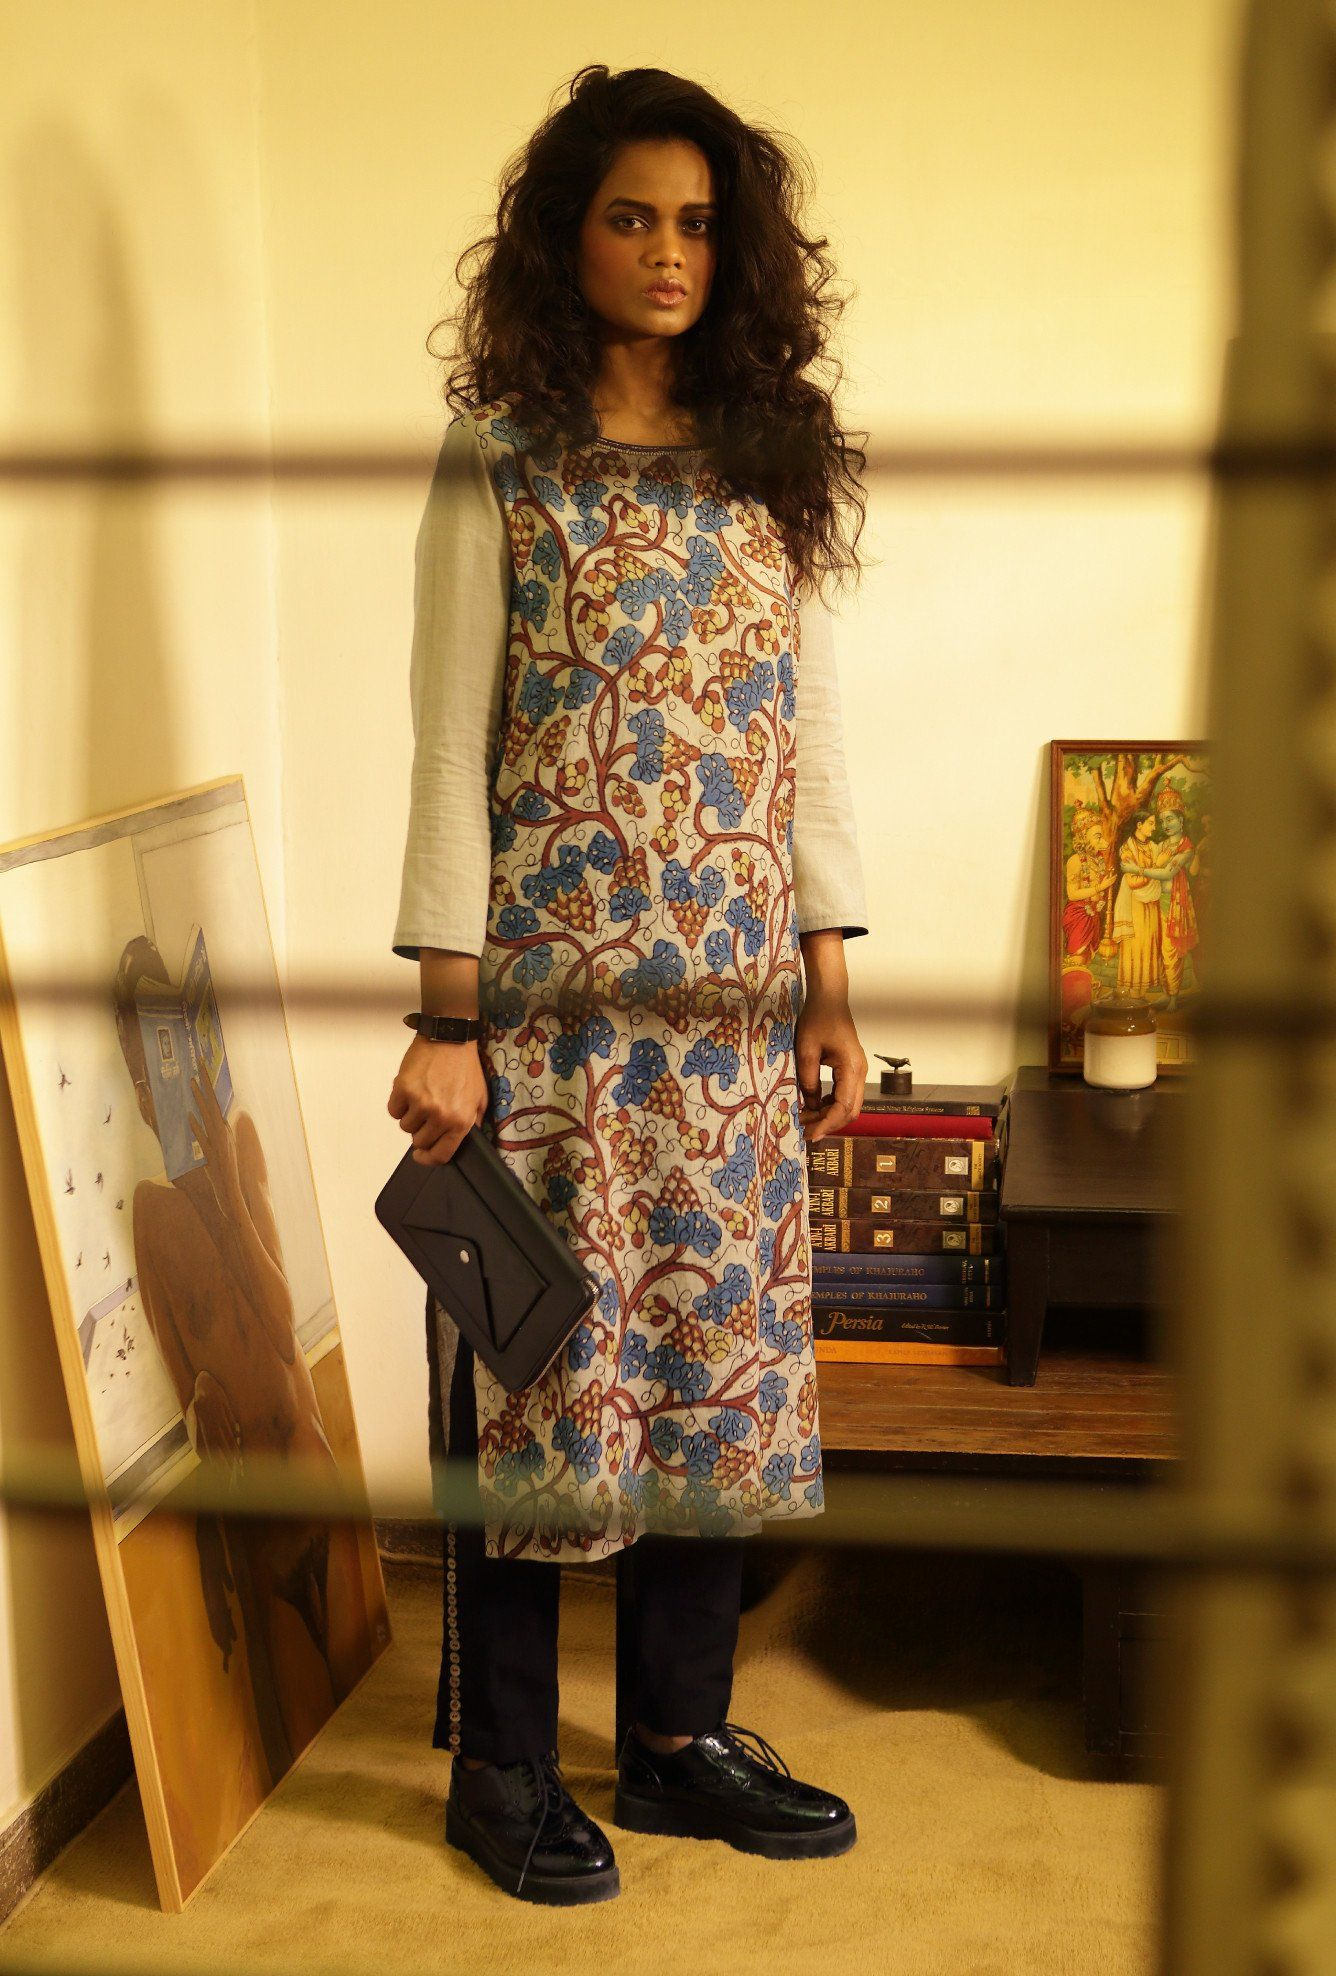 Tunic in khadi malmal cotton, with kalamkari hand painting. Ankle length cigarette pants in khadi cotton Fabric Tunic: Khadi malmal cotton Fabric Pants: Khadi Cotton Care: Dry Clean Only SHIPPING & RETURNS This product qualifies for free shipping